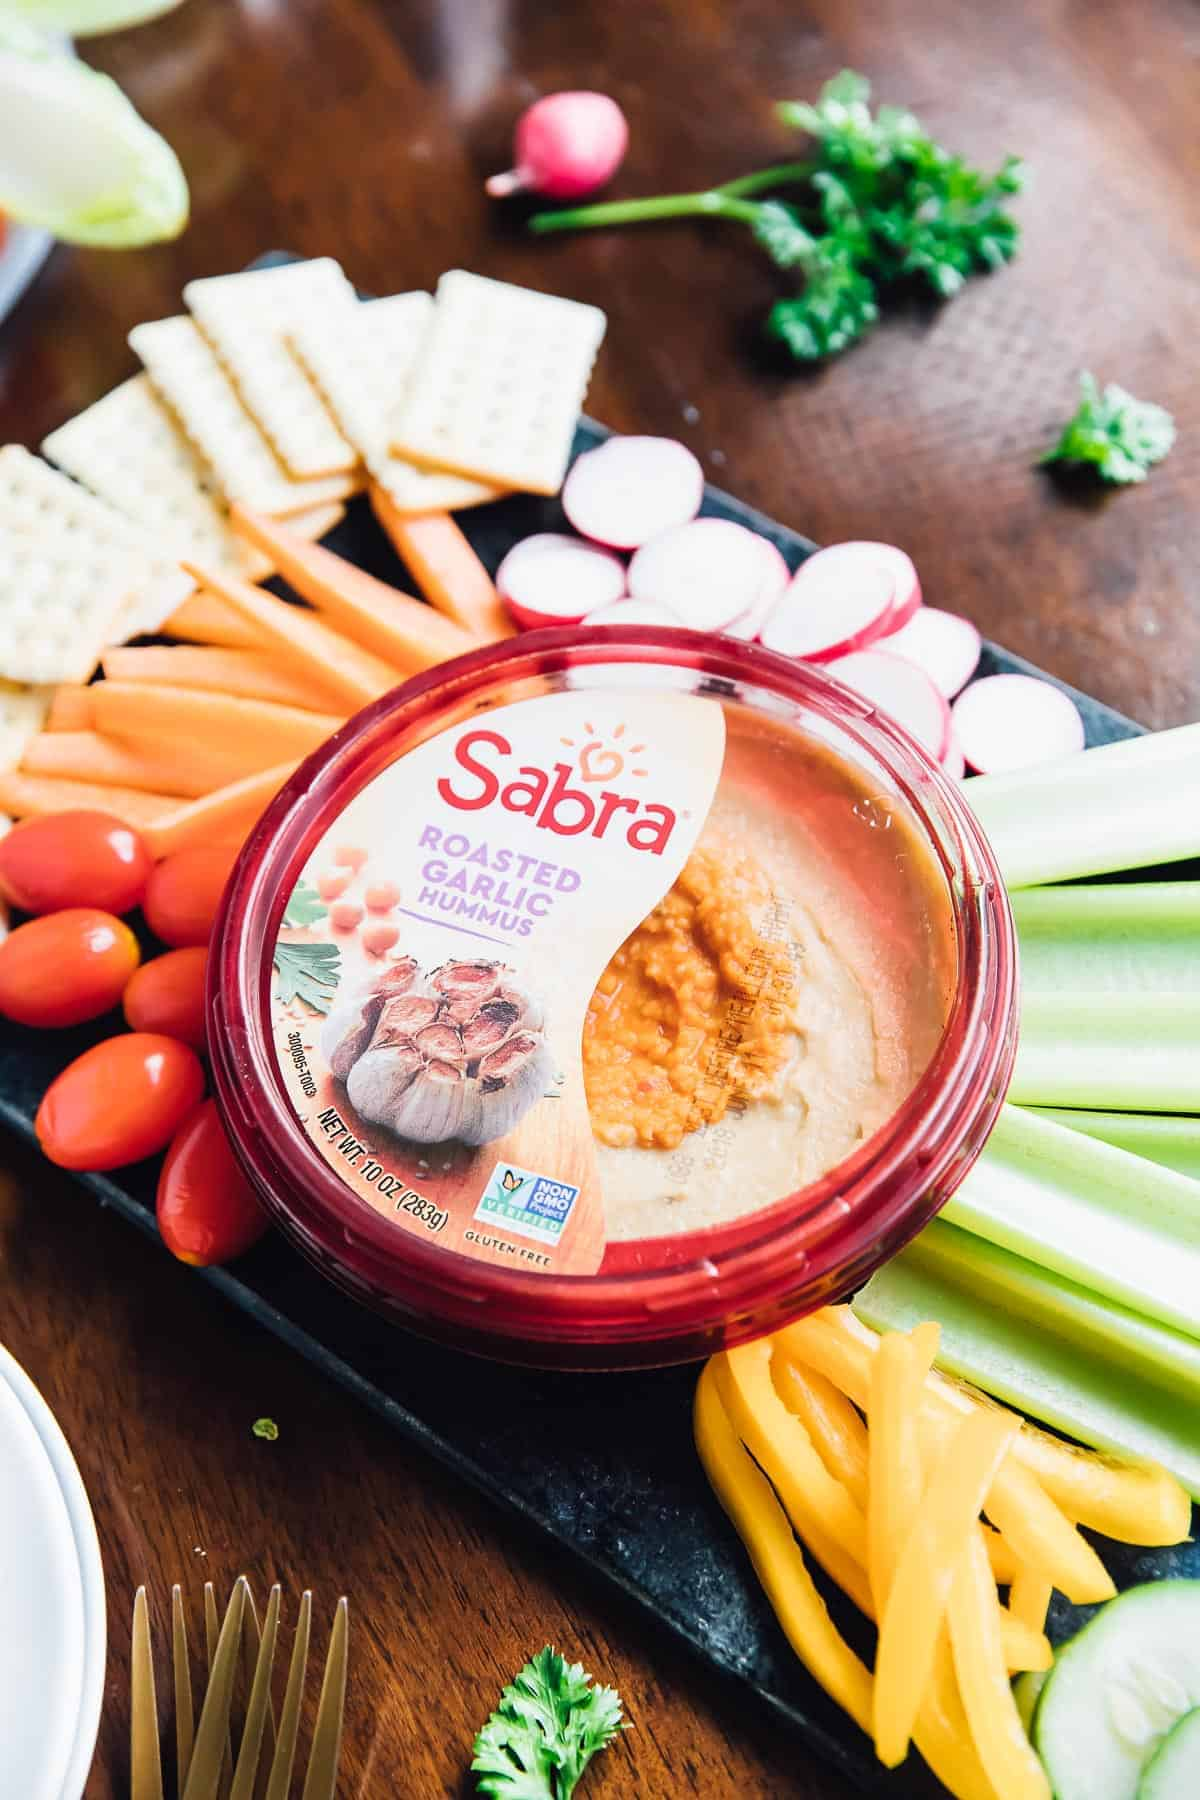 Here's an incredibly easy recipe forHow to Create an Easy Crudité Platter! I love them because they look absolutely stunning, with very little effort! You don't need to cook or mix anything, just cut, serve and enjoy! This platter features amazing hummus dips and crunchy, easy-to-prep veggies! via https://jessicainthekitchen.com #sponsored @sabradips #vegan #crudite #glutenfree #party #summer #summerideas #summerparty #recipeideas #partyideas